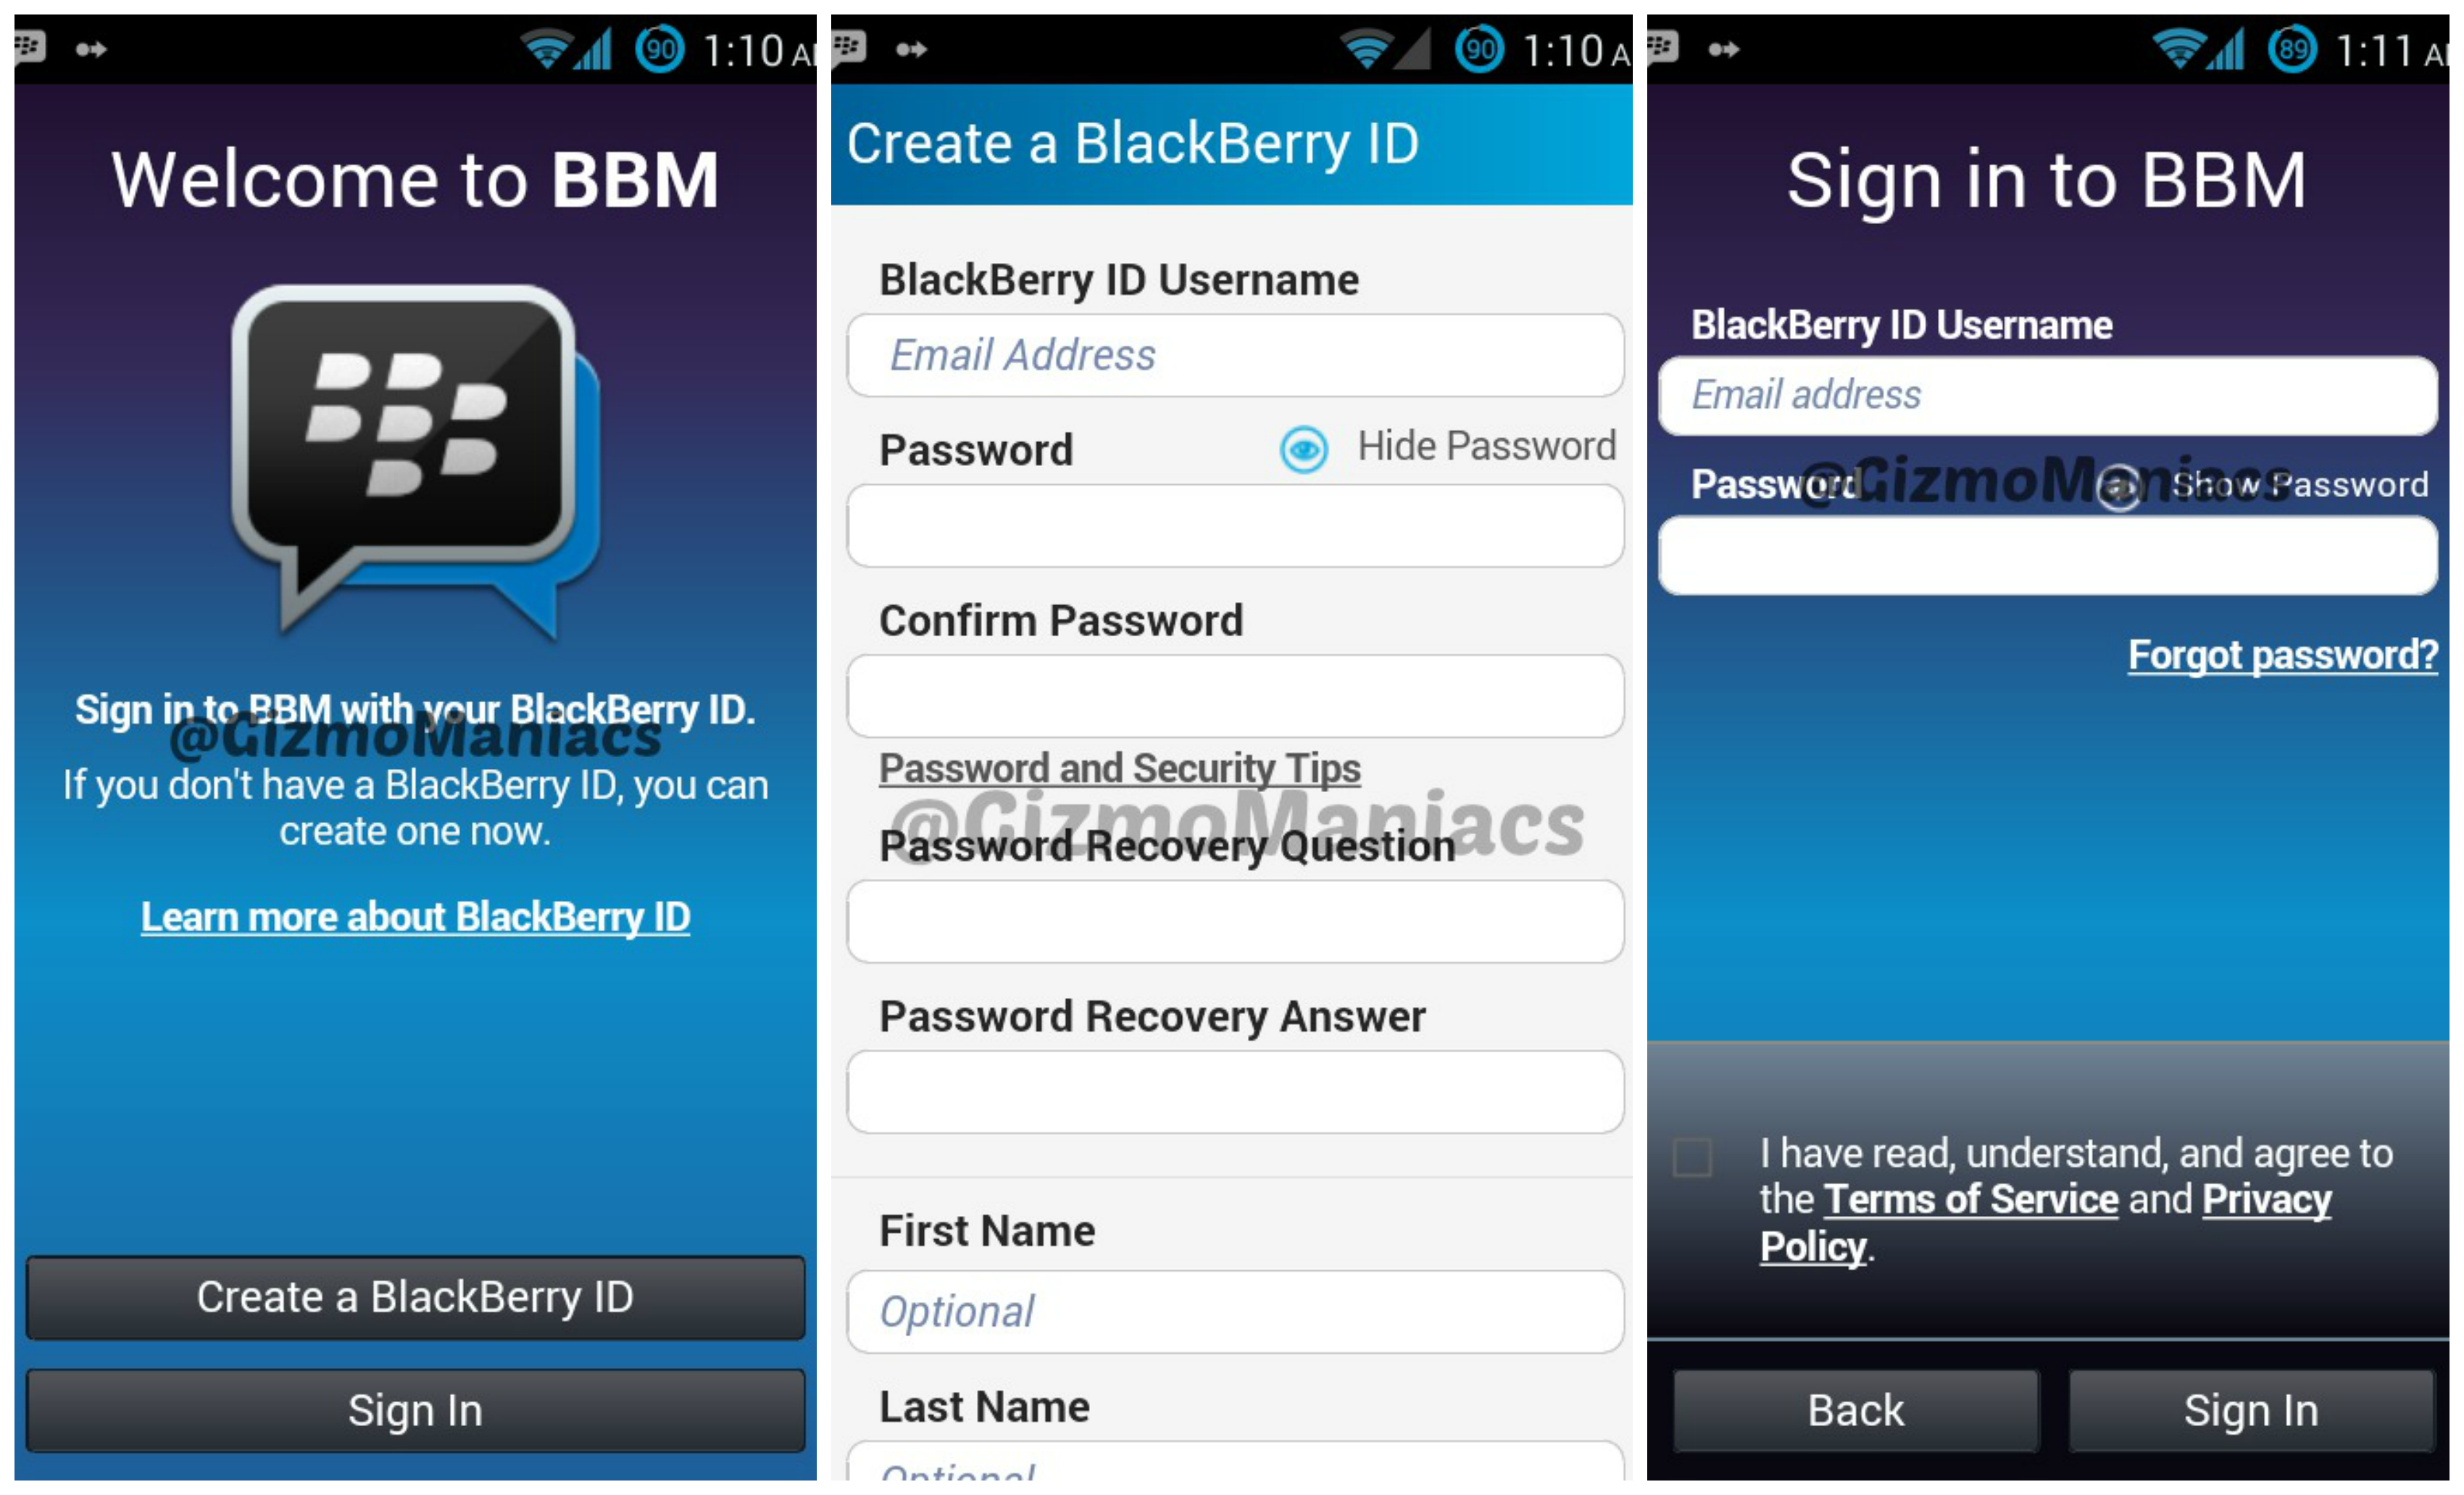 bbm for android versi 0 8 87 beta